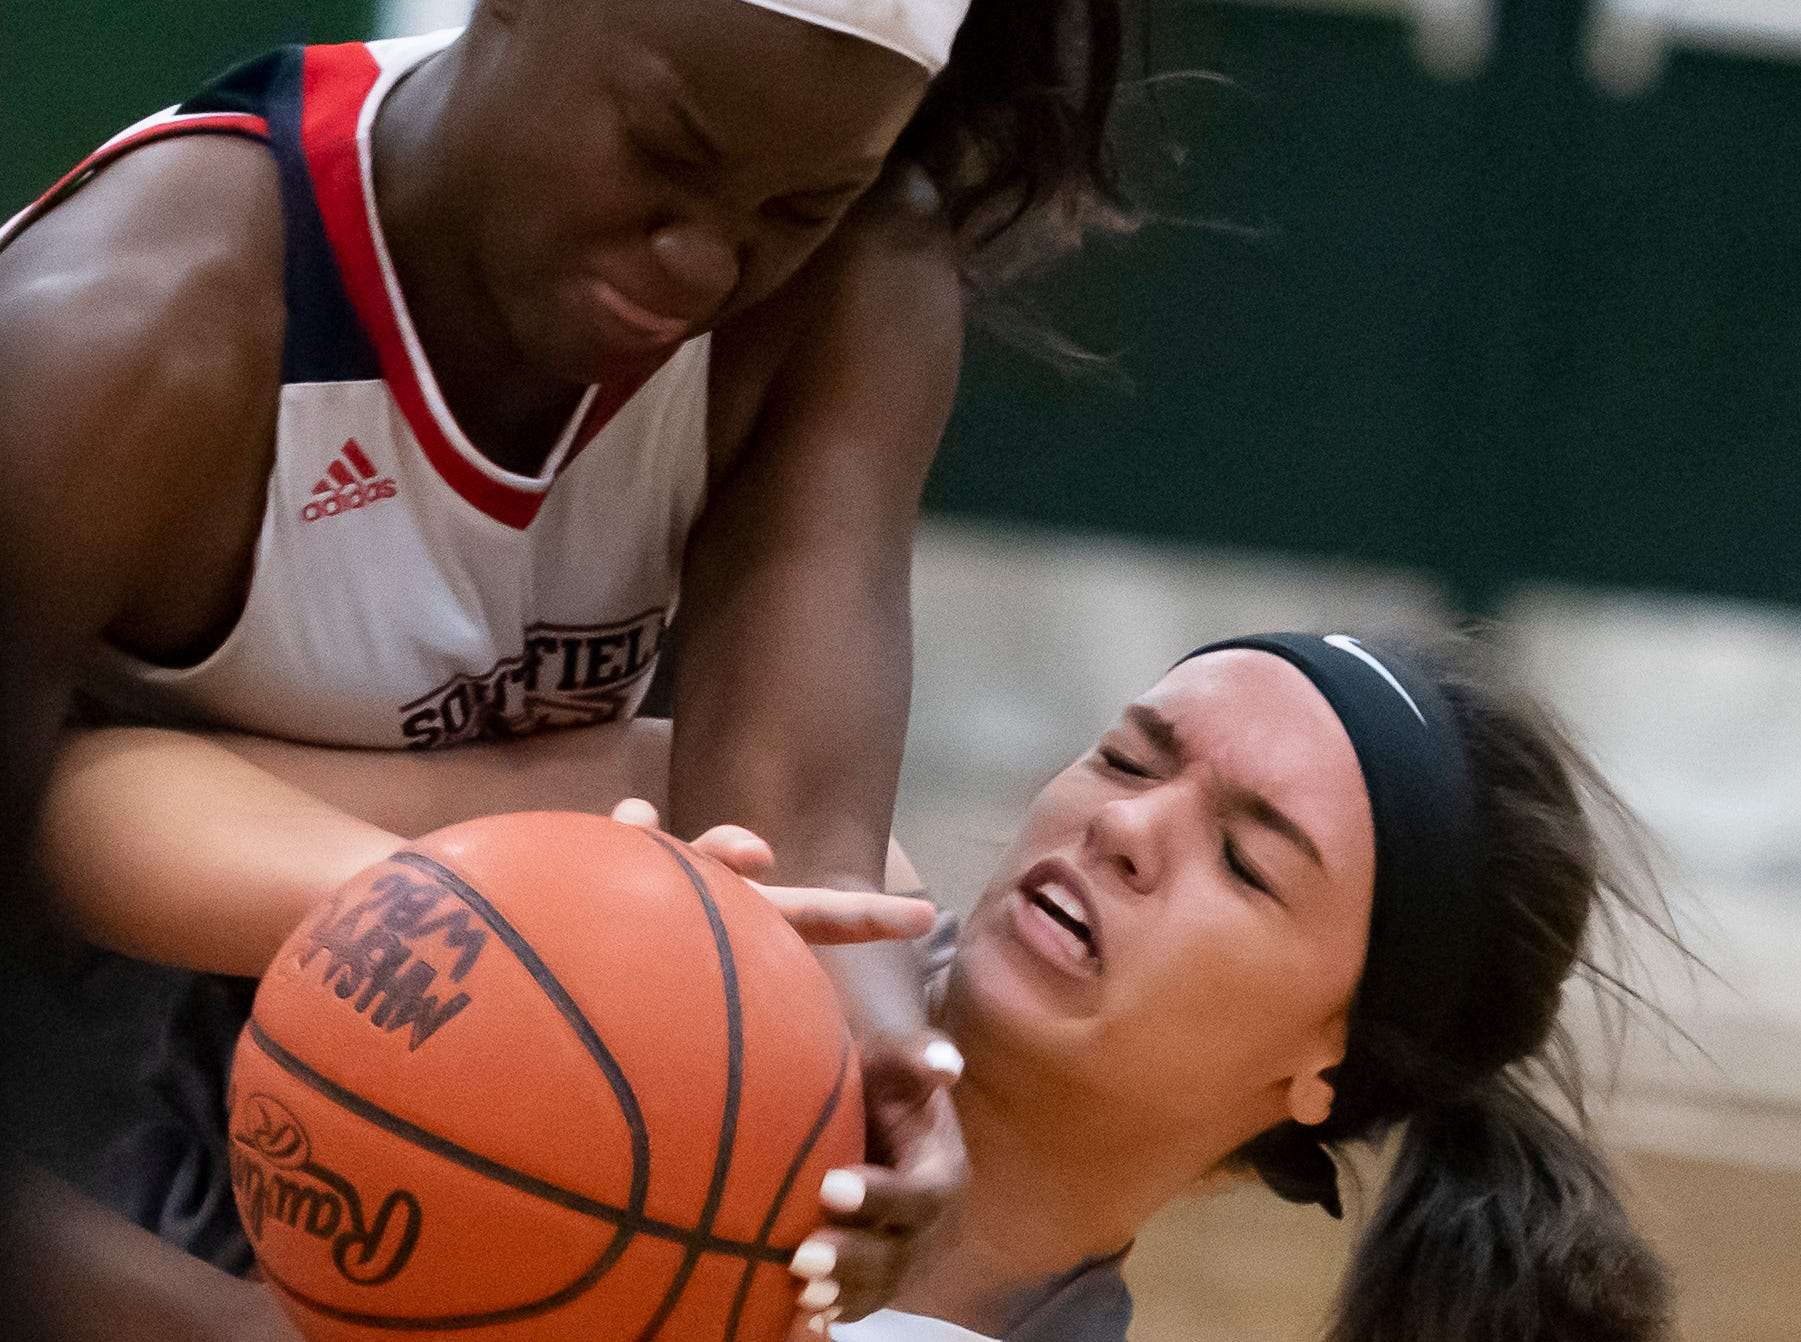 Southfield A&T forward Alexis Johnson and Lakeview forward Ariana Wlodeck battle for a loose ball in the second half.